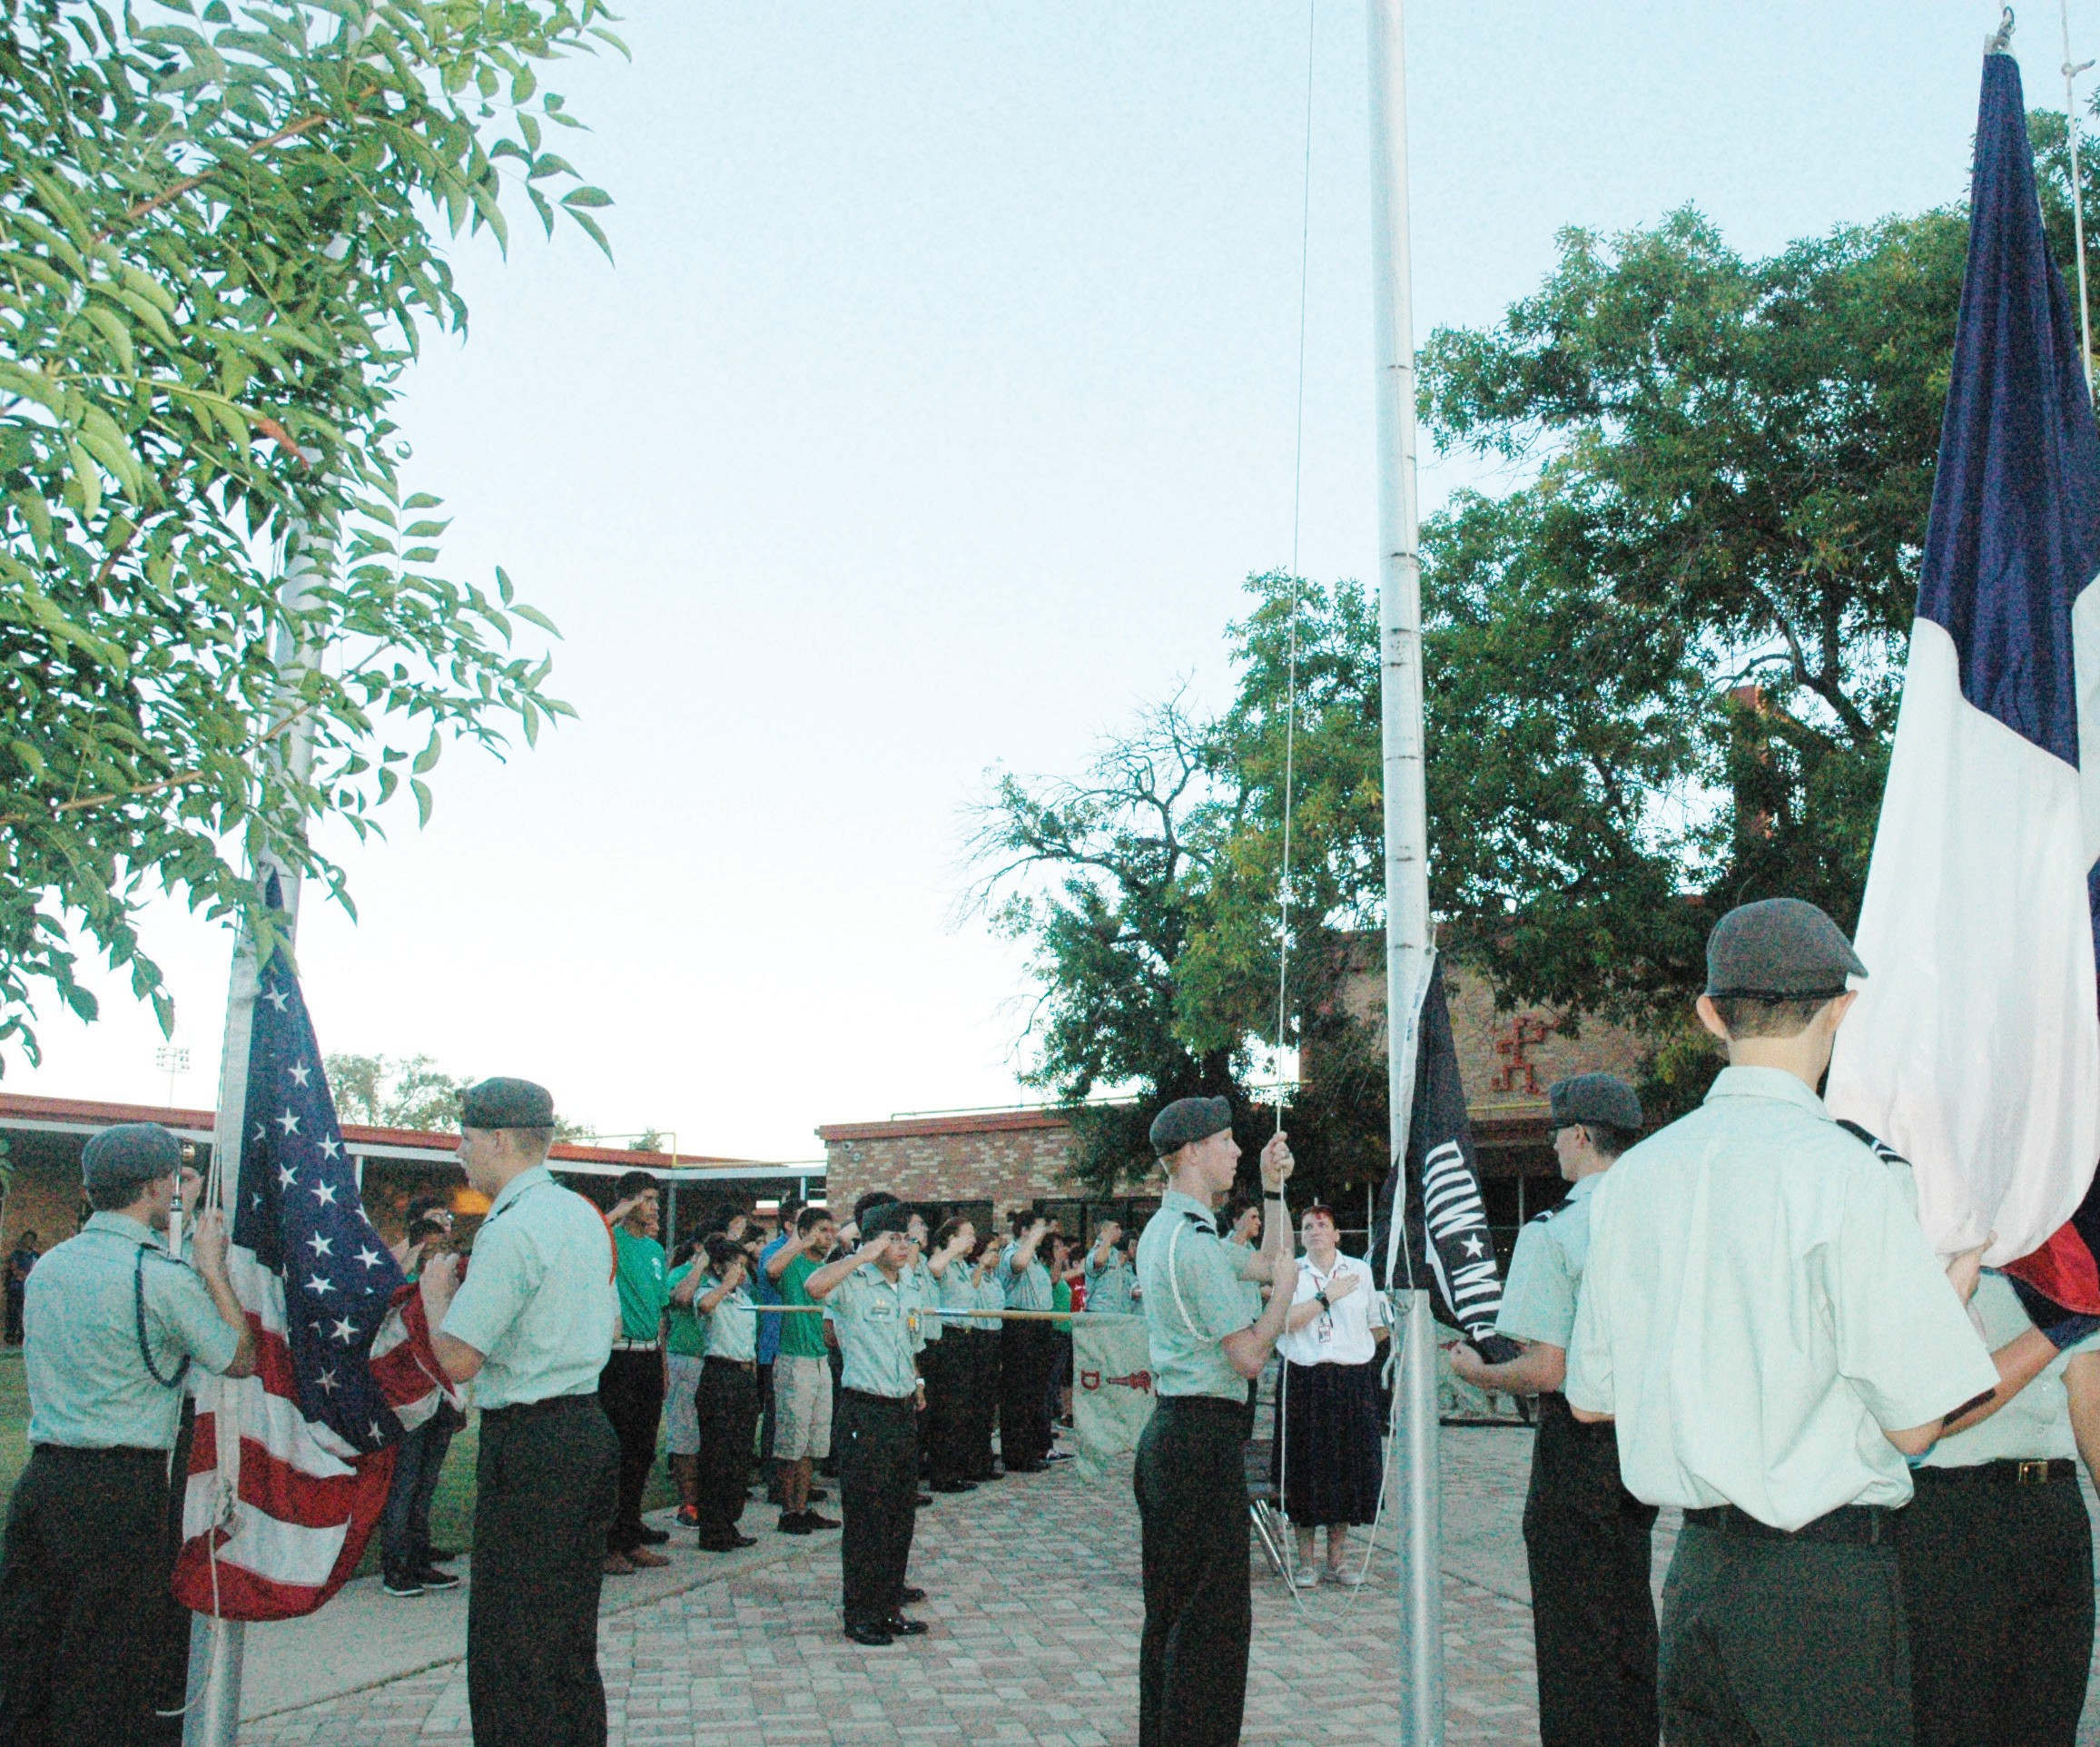 JROTC Cadets prepare the United States, POW/MIA and Texas flags to be flown at half-staff during the Patriot Day ceremony on September 11 at the Pleasanton High School.